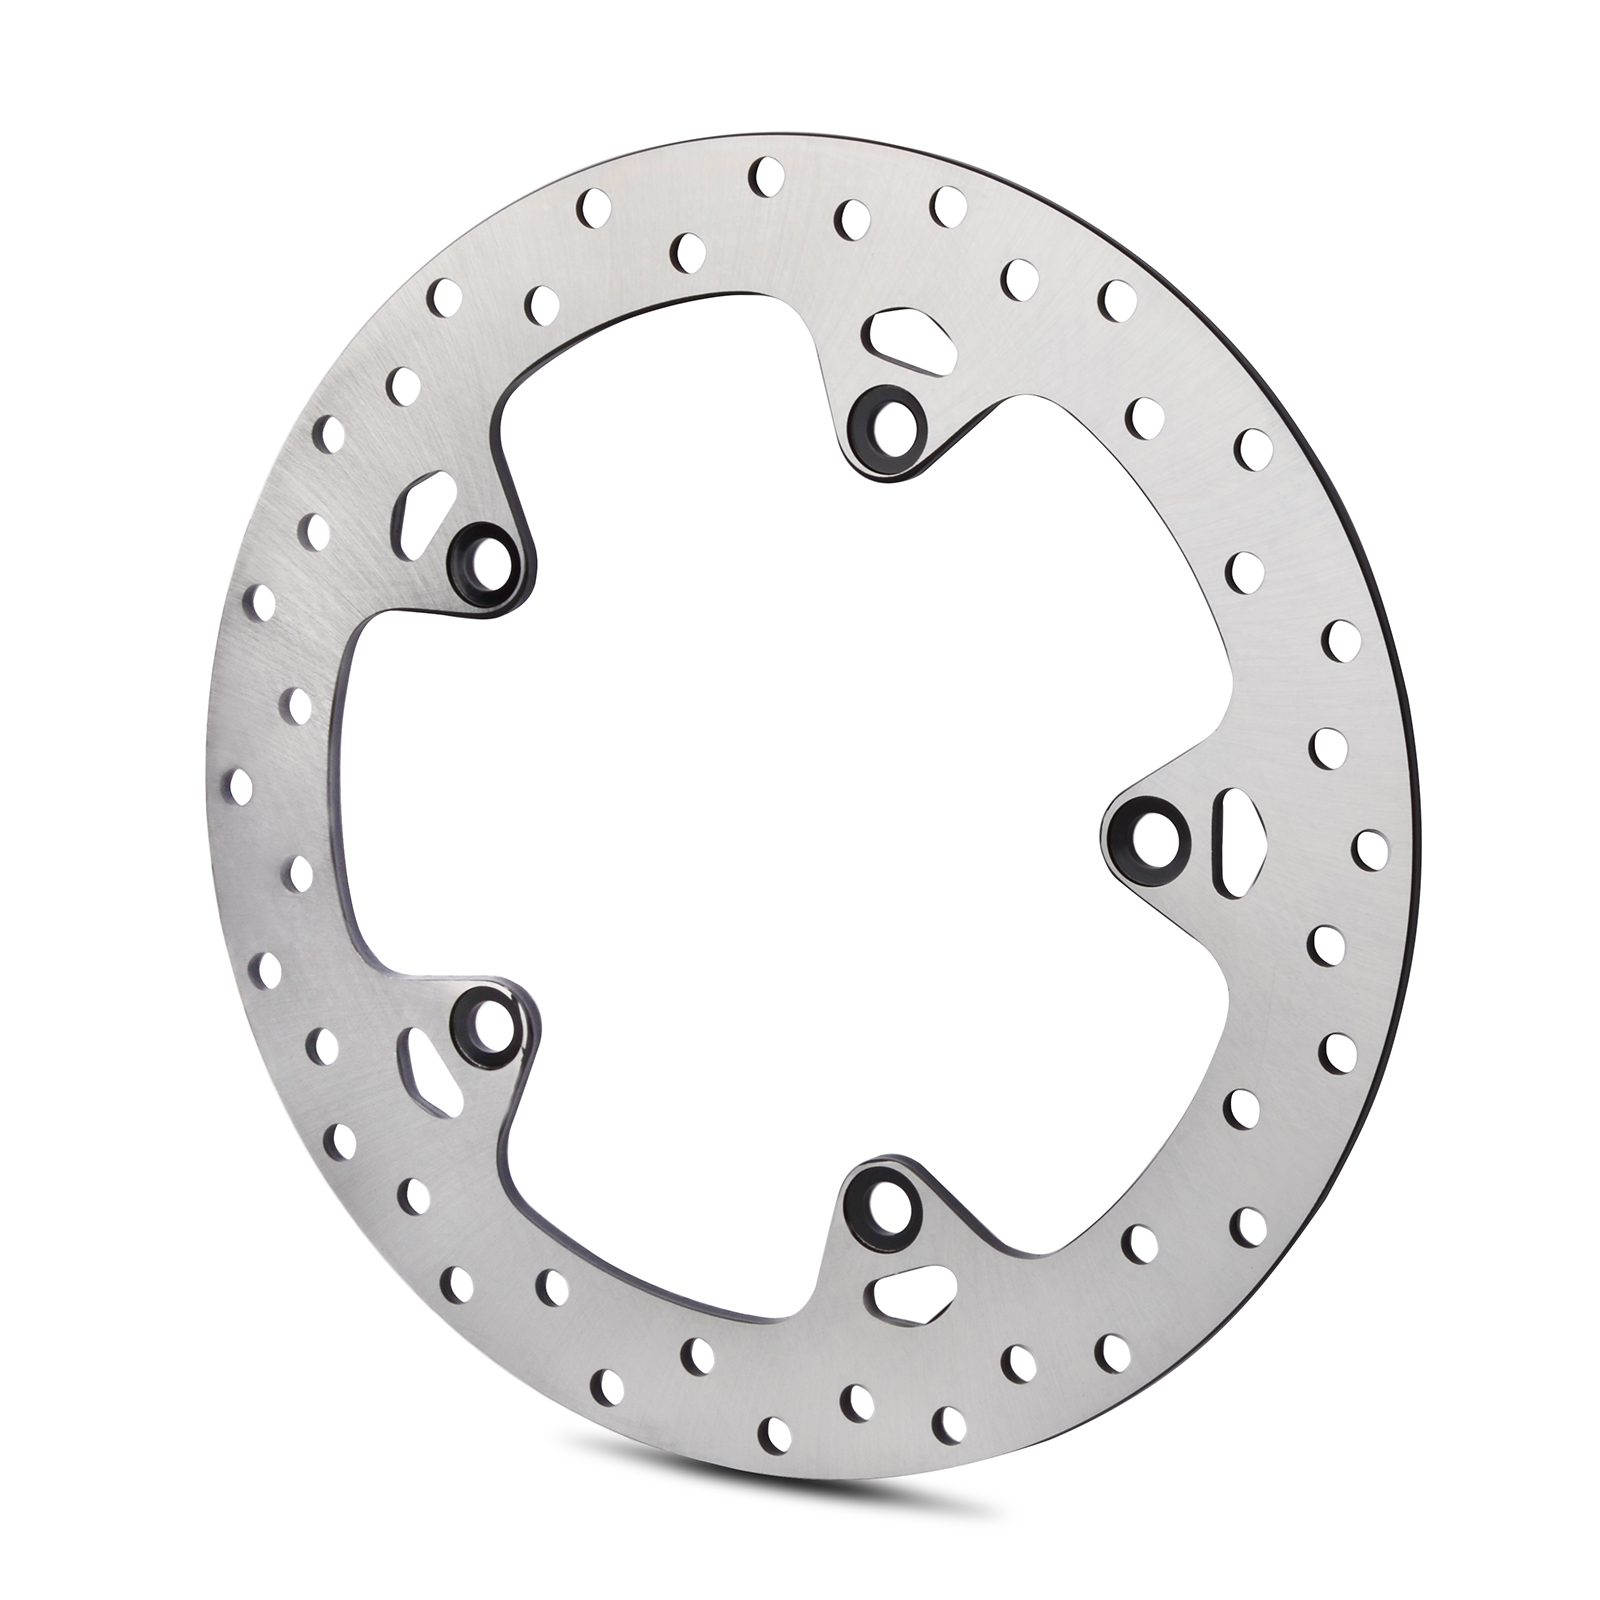 Rear Brake Disc Rotor For BMW R 1200 GS R NINE T R 1200 ST RT <font><b>S</b></font> <font><b>1000</b></font> <font><b>XR</b></font> F 800 ST F 800 GS ADVENTURE ABS image